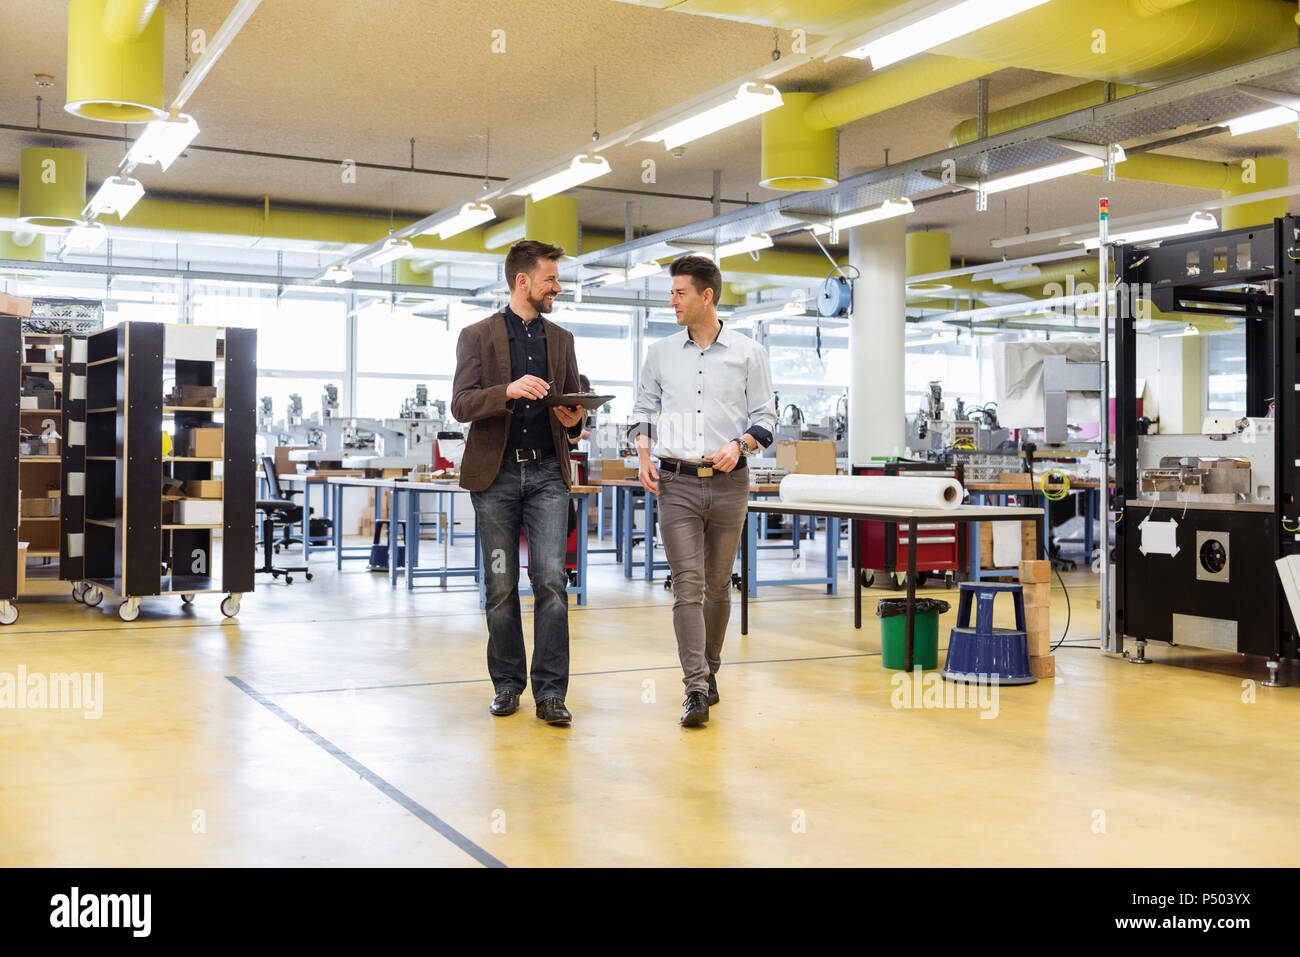 Two men walking and talking in factory - Stock Image